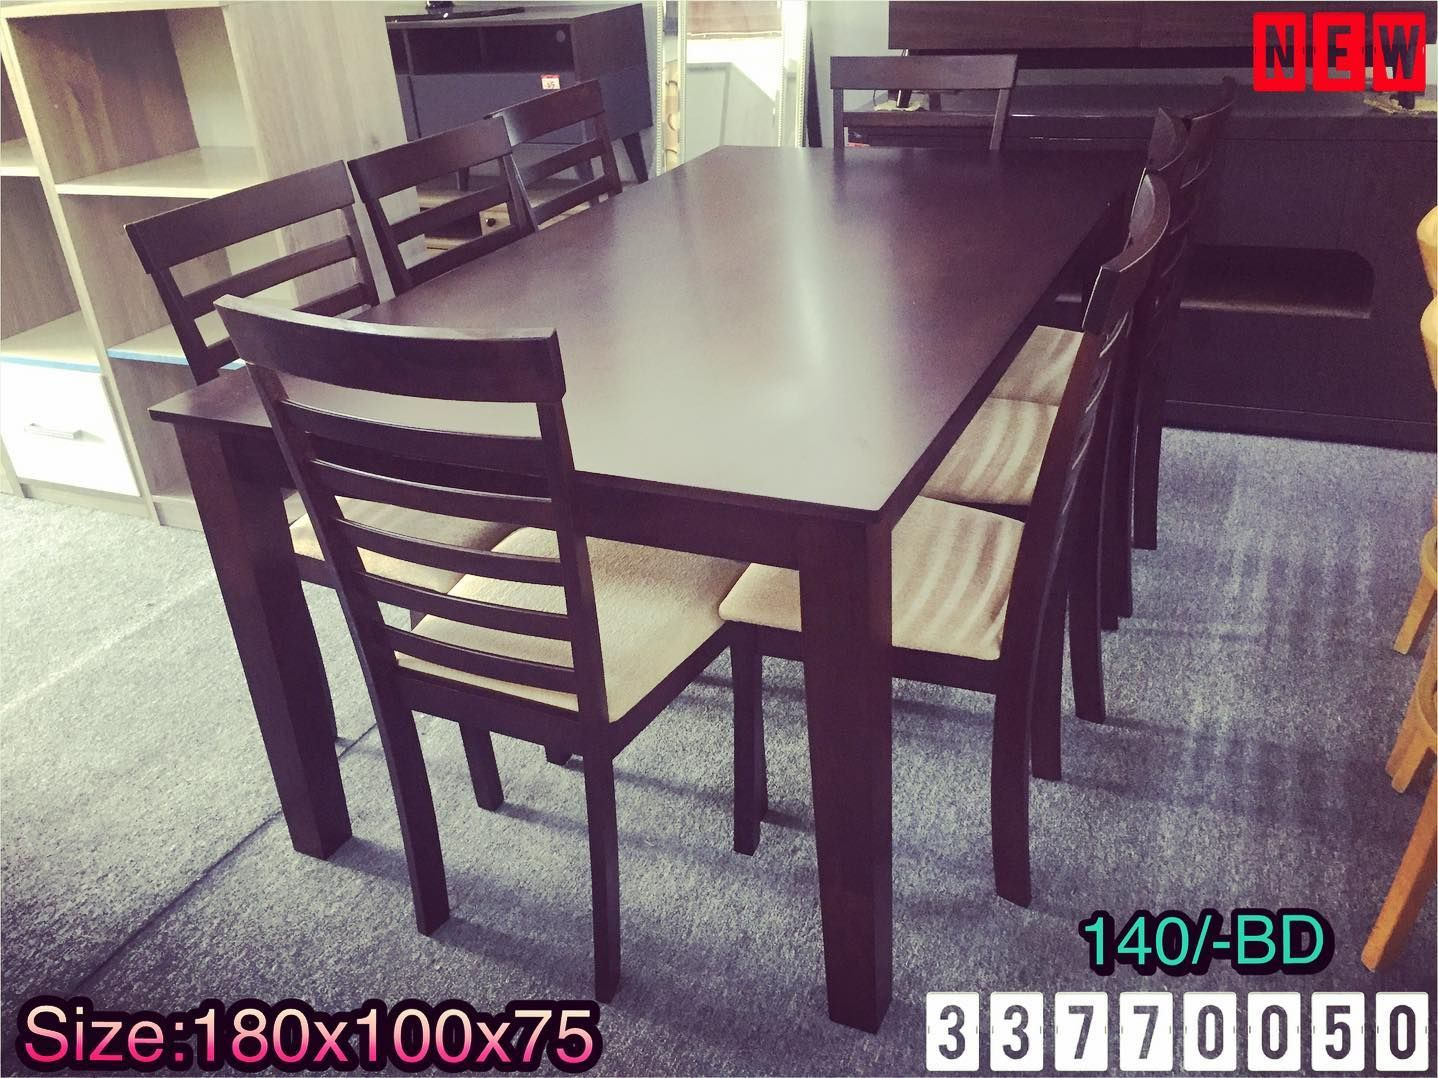 Wood Dining Table For 8 Person Size 180x100x75 Brown Color New Made In Malaysia Price 140 Bd طاولة طعام خشب ل 8 اشخاص ل Dining Table Decor Home Decor